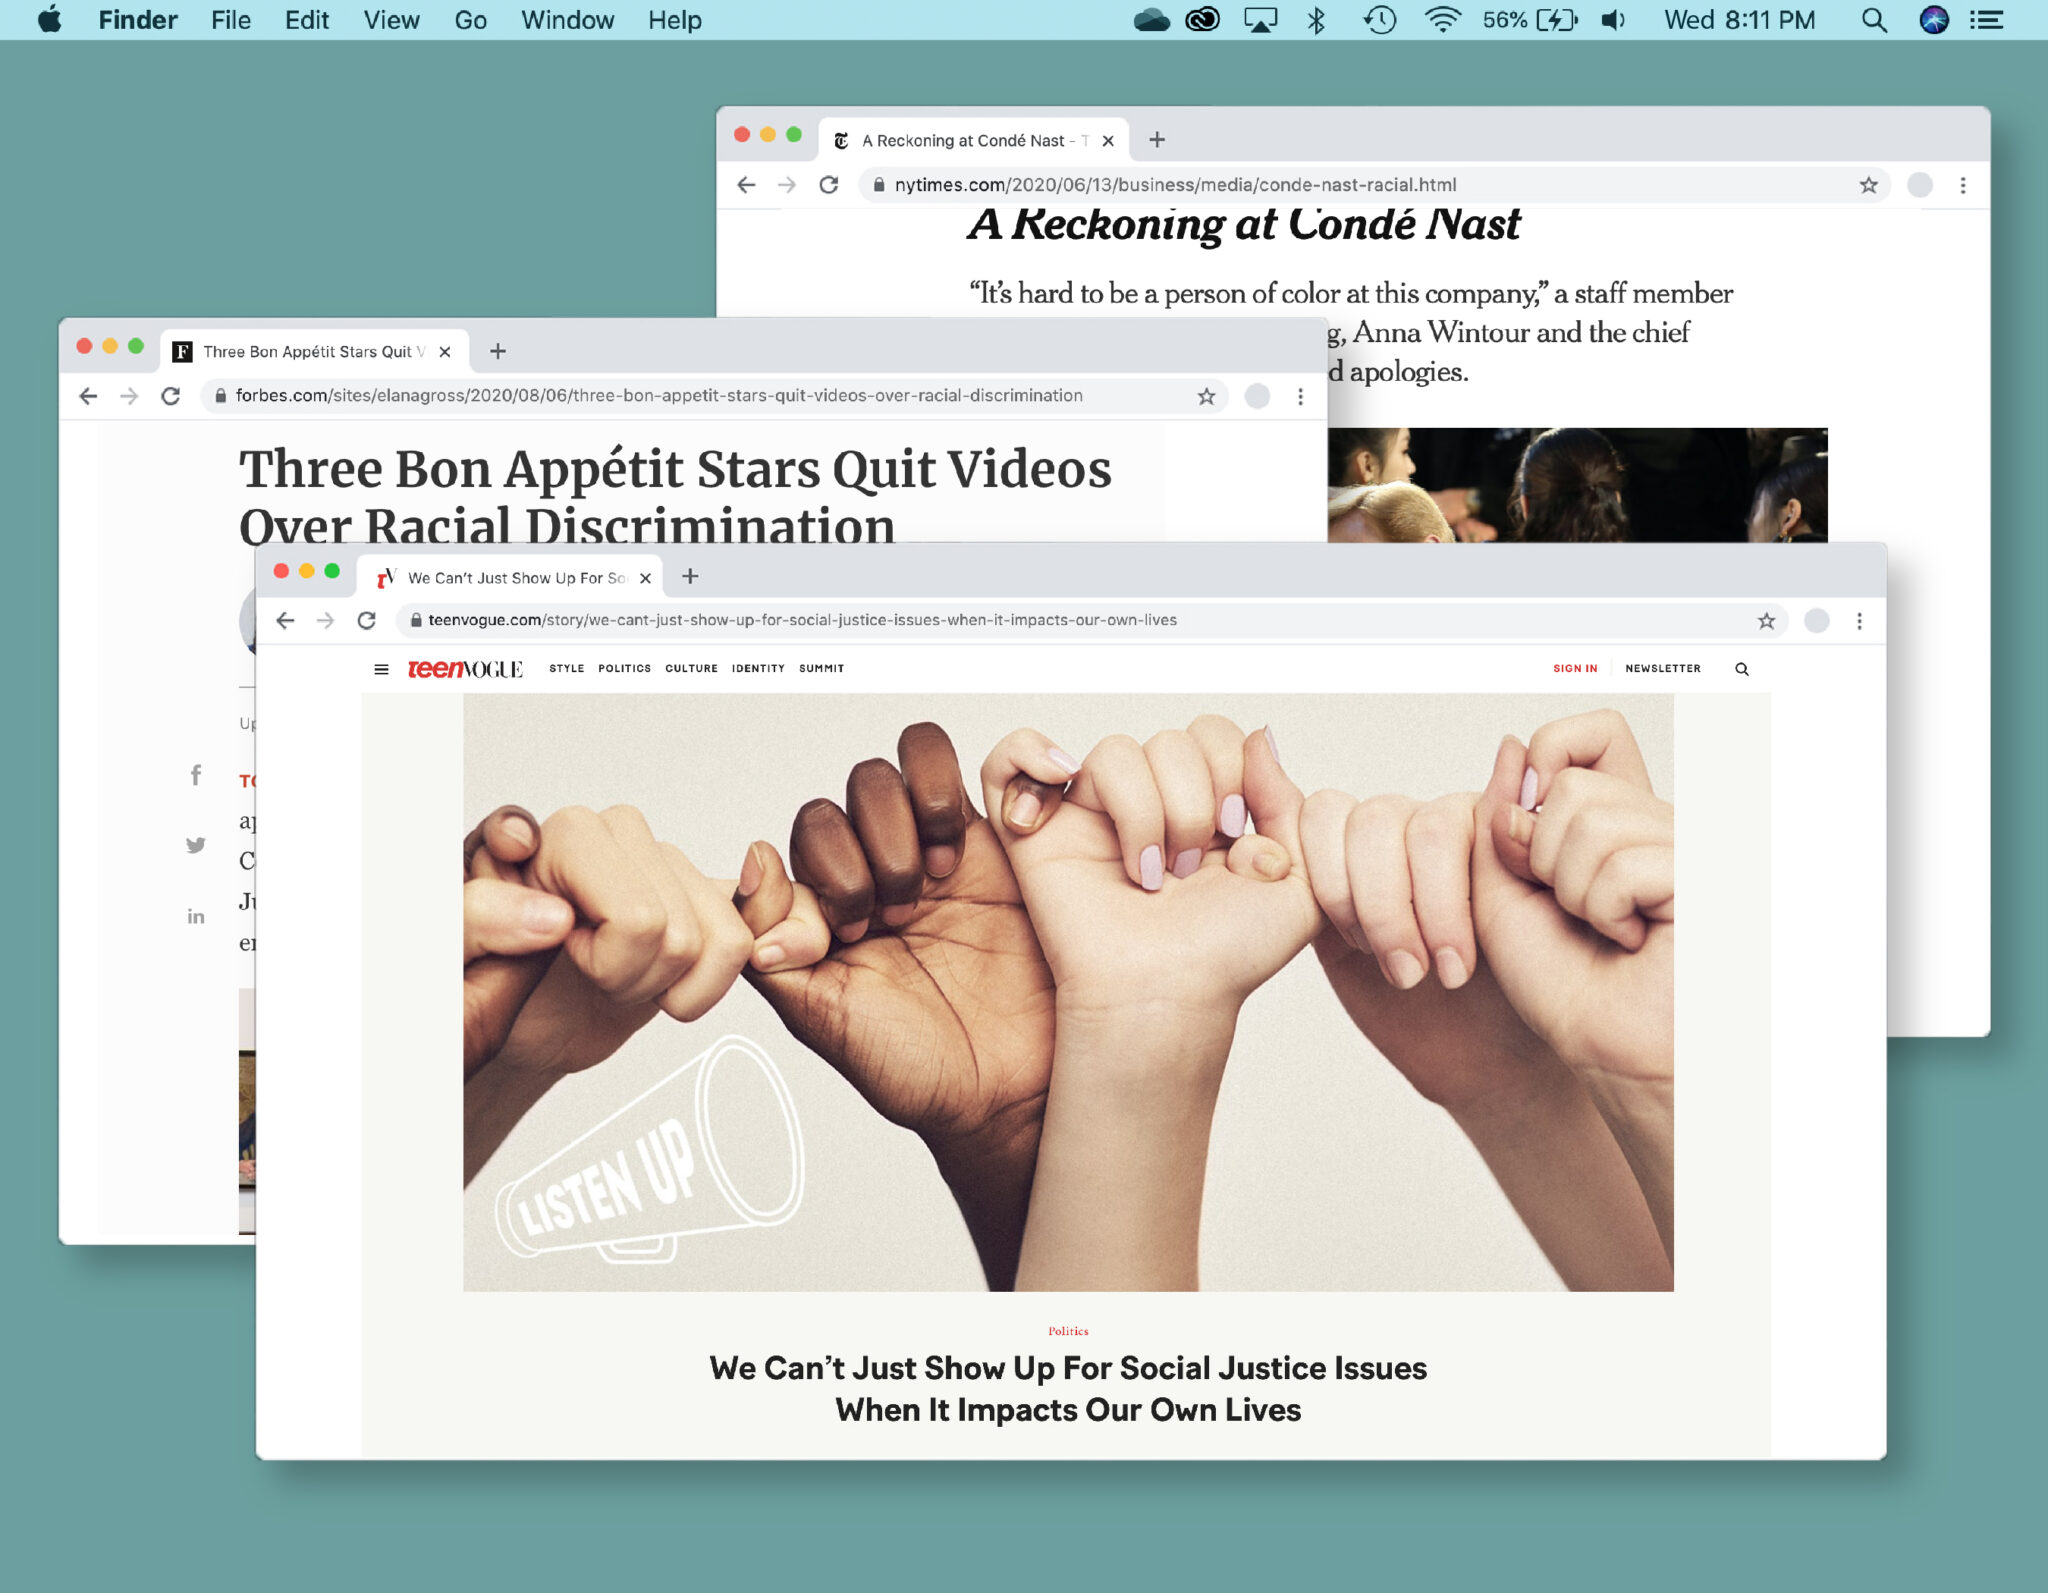 Desktop screen with a Teen Vogue article on social justice at the center, layered above two windows with less progressive content.